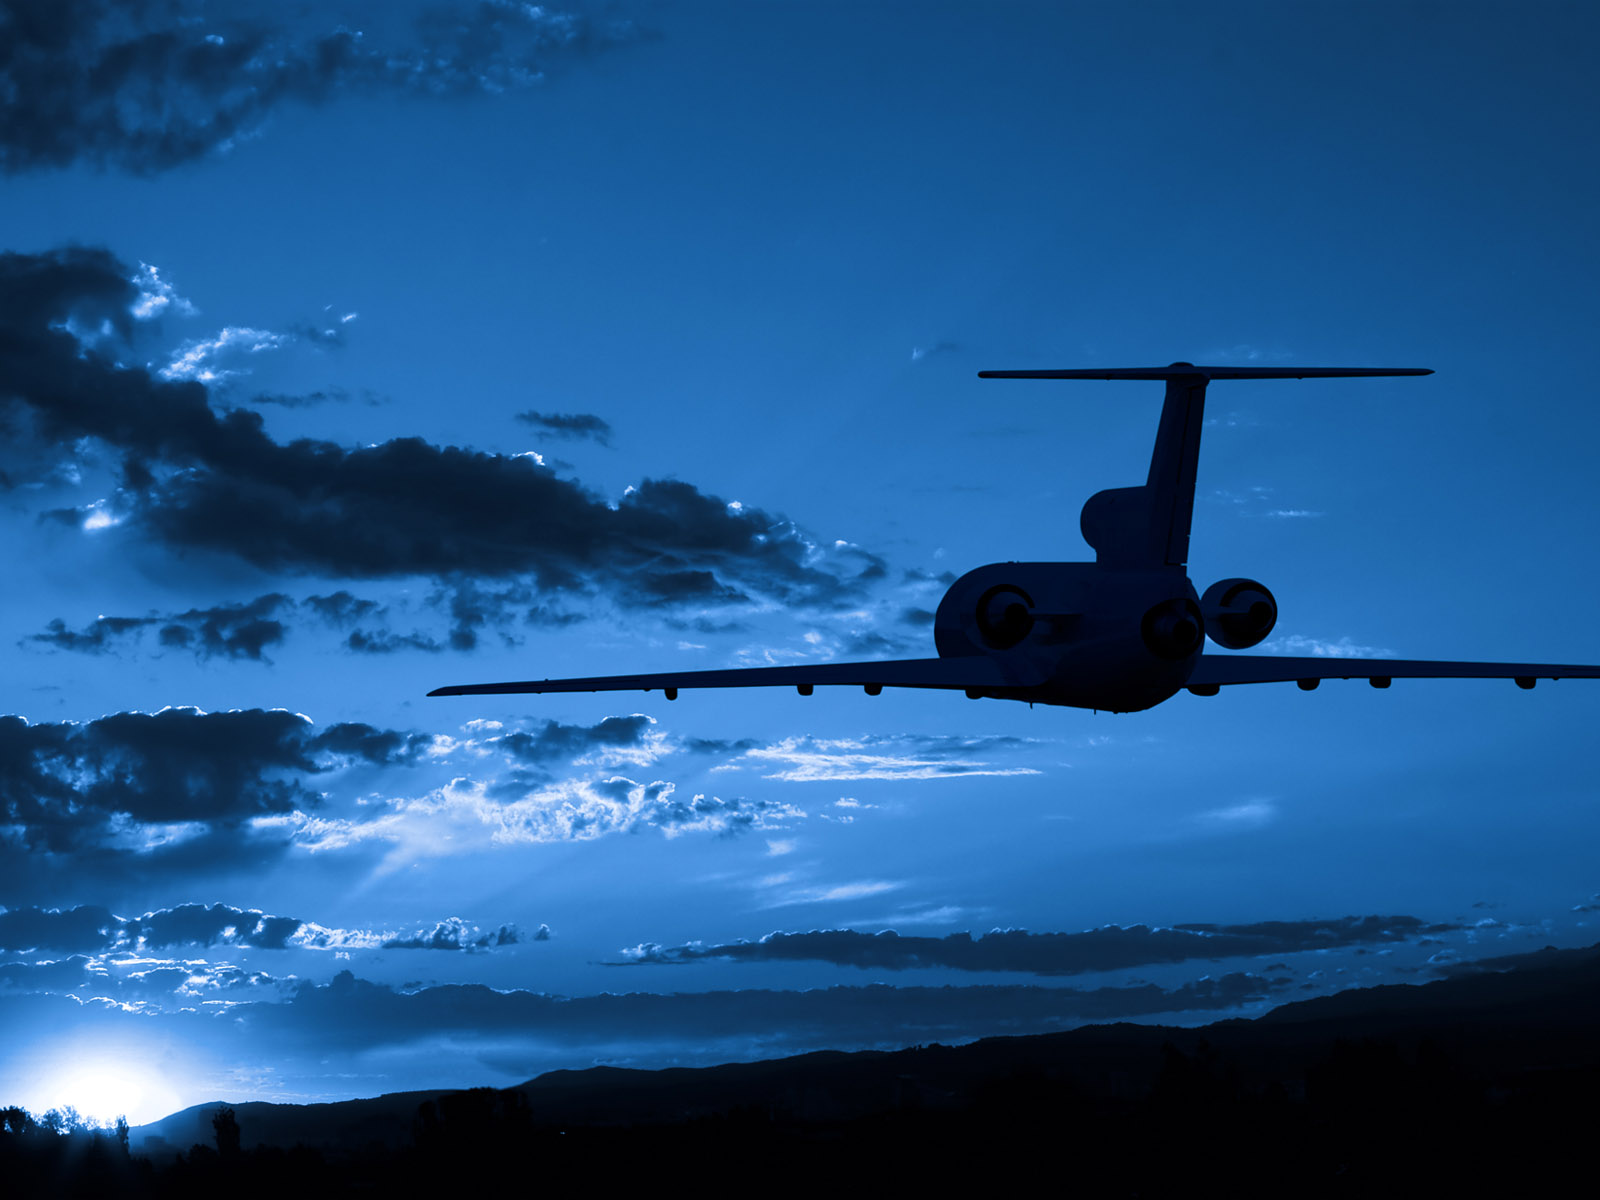 Night Flight wallpapers and images   wallpapers pictures photos 1600x1200